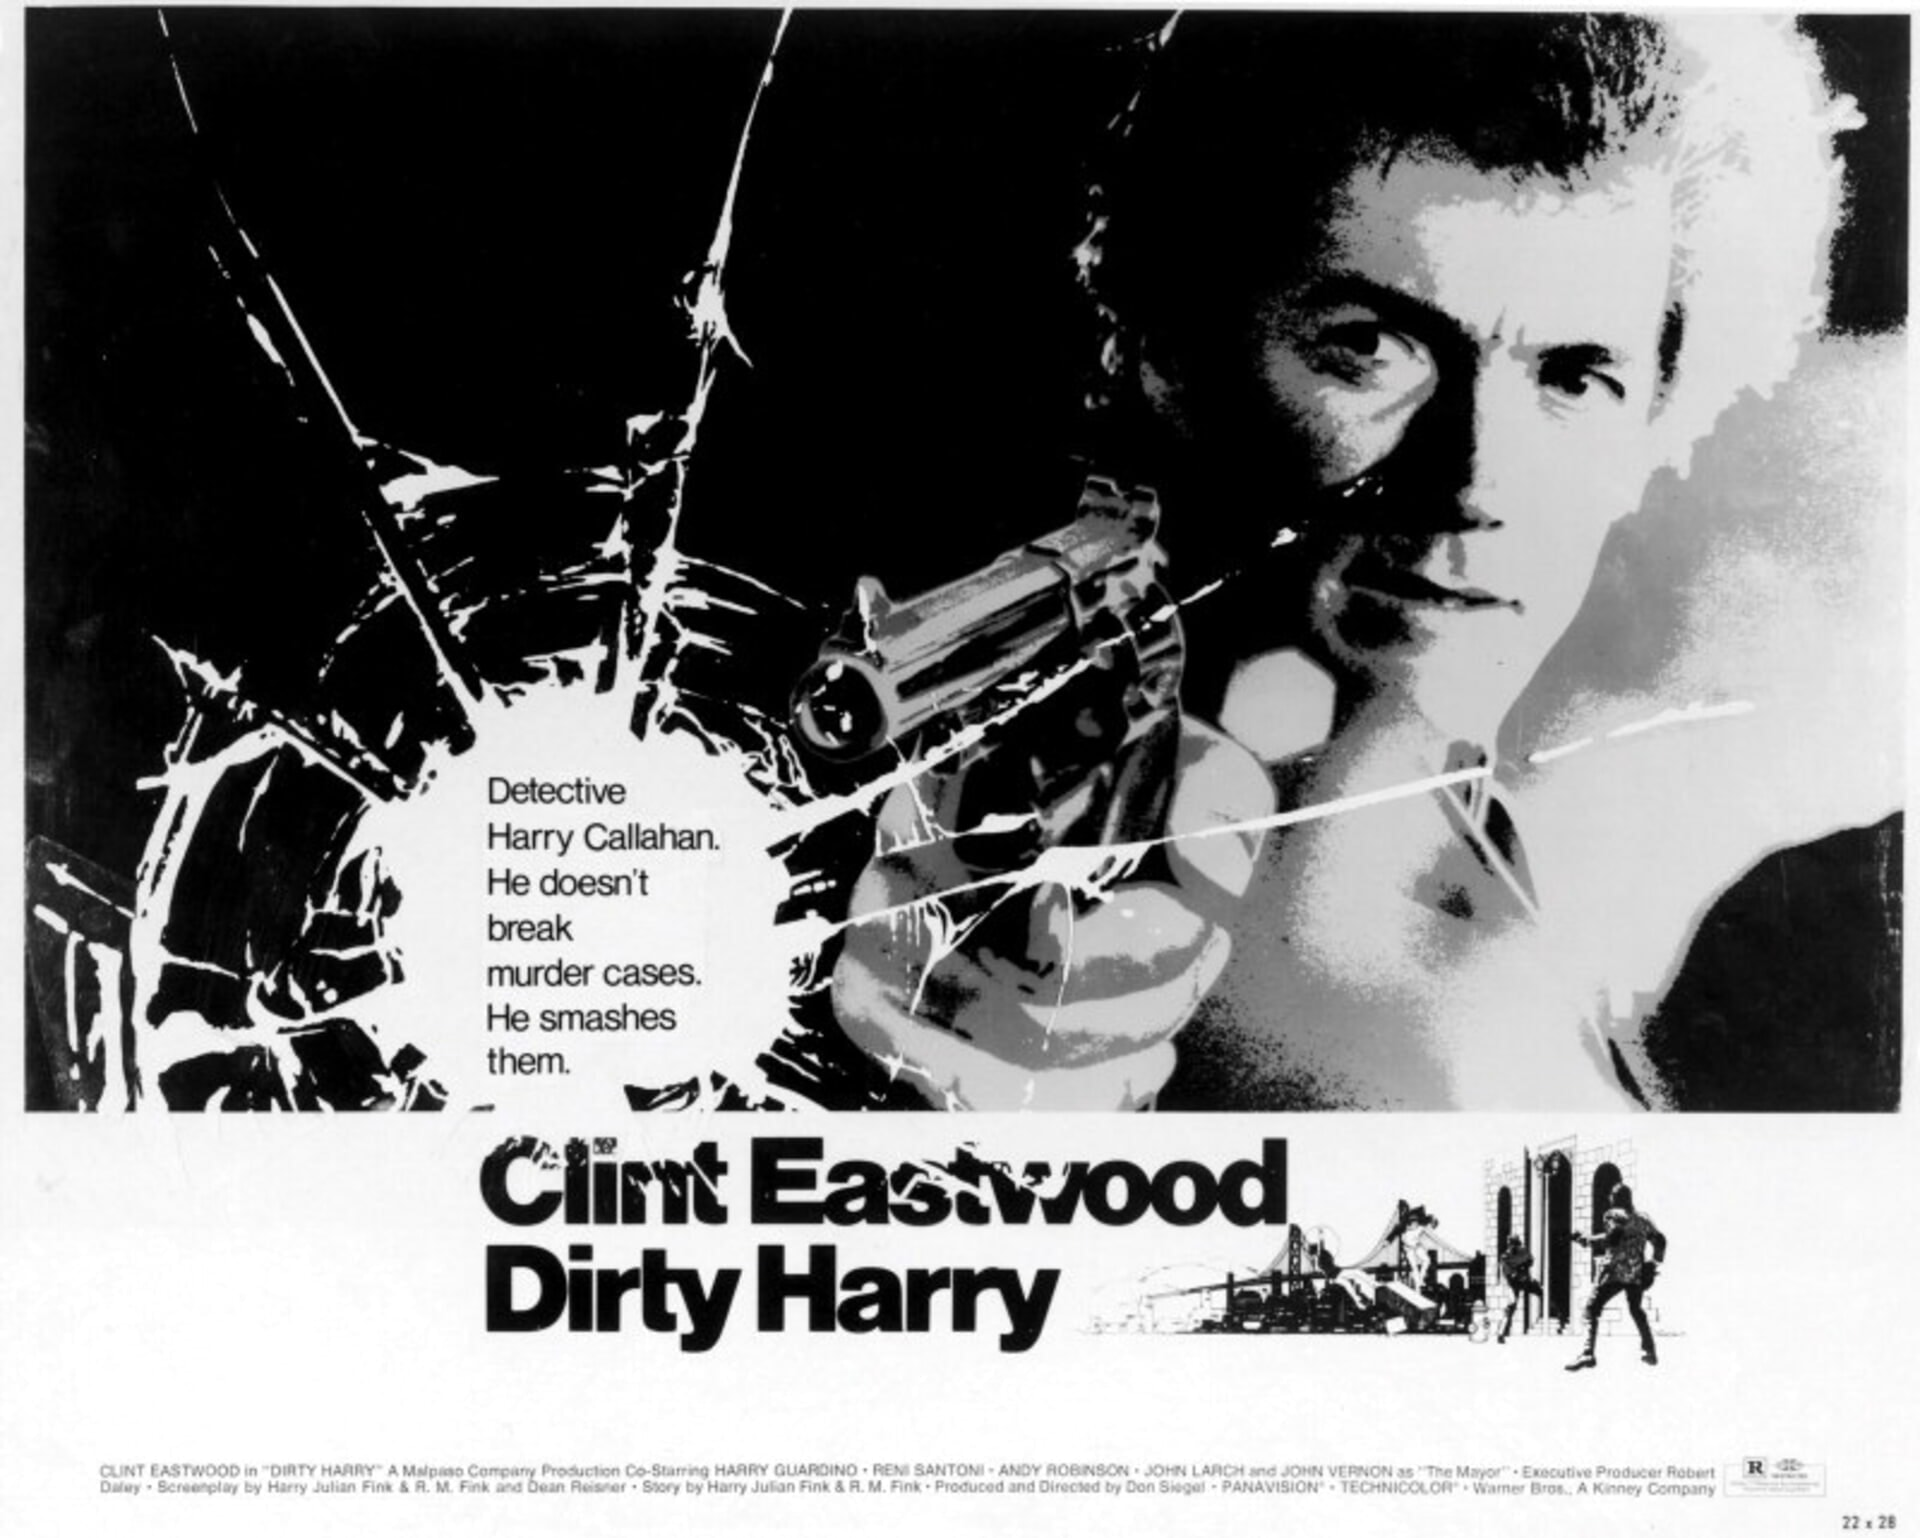 Dirty Harry - Poster 2